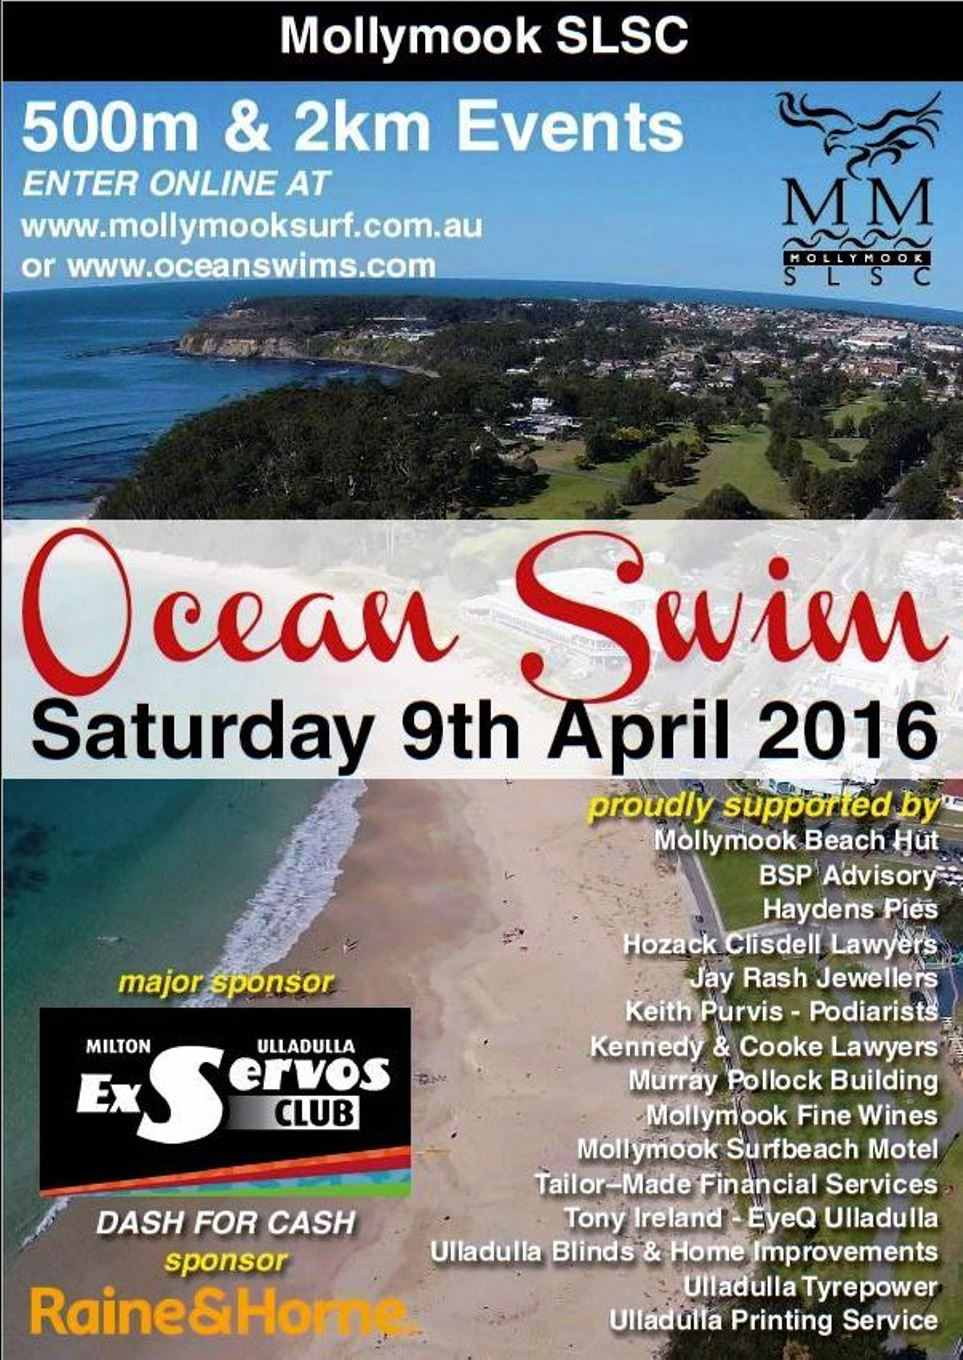 mollymook,mollymook surf club,mollymook news,mollymook beach,ocean swim,Mollymook ocean swim